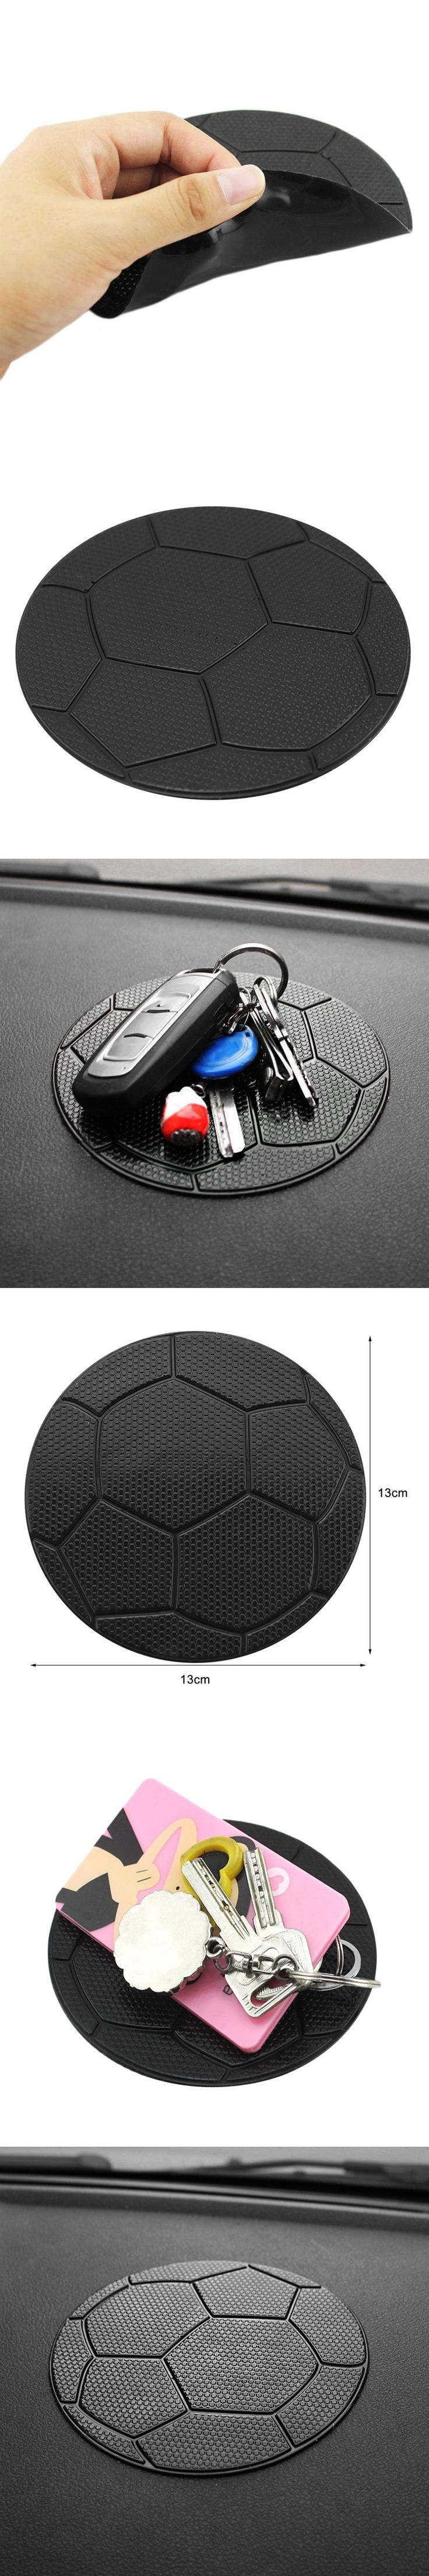 Silicone Football Pattern Car Auto Styling Anti Slip Sticky Pad Cushion for Cell Phone Coins Key Chain Sunglasses hot sale